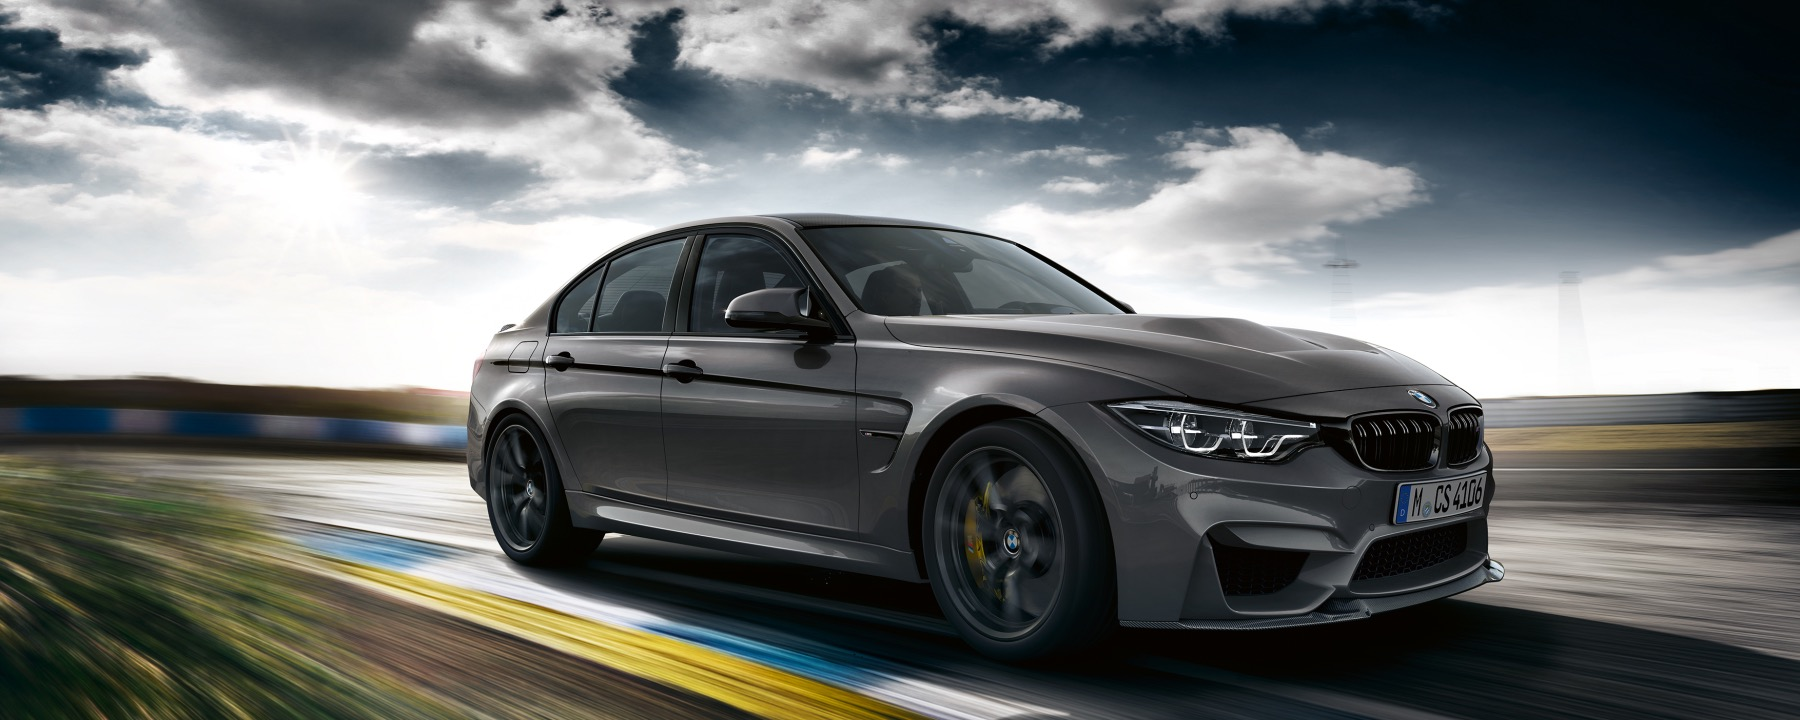 Bmw Announces The New M3 Cs Indigo Auto Group Blog